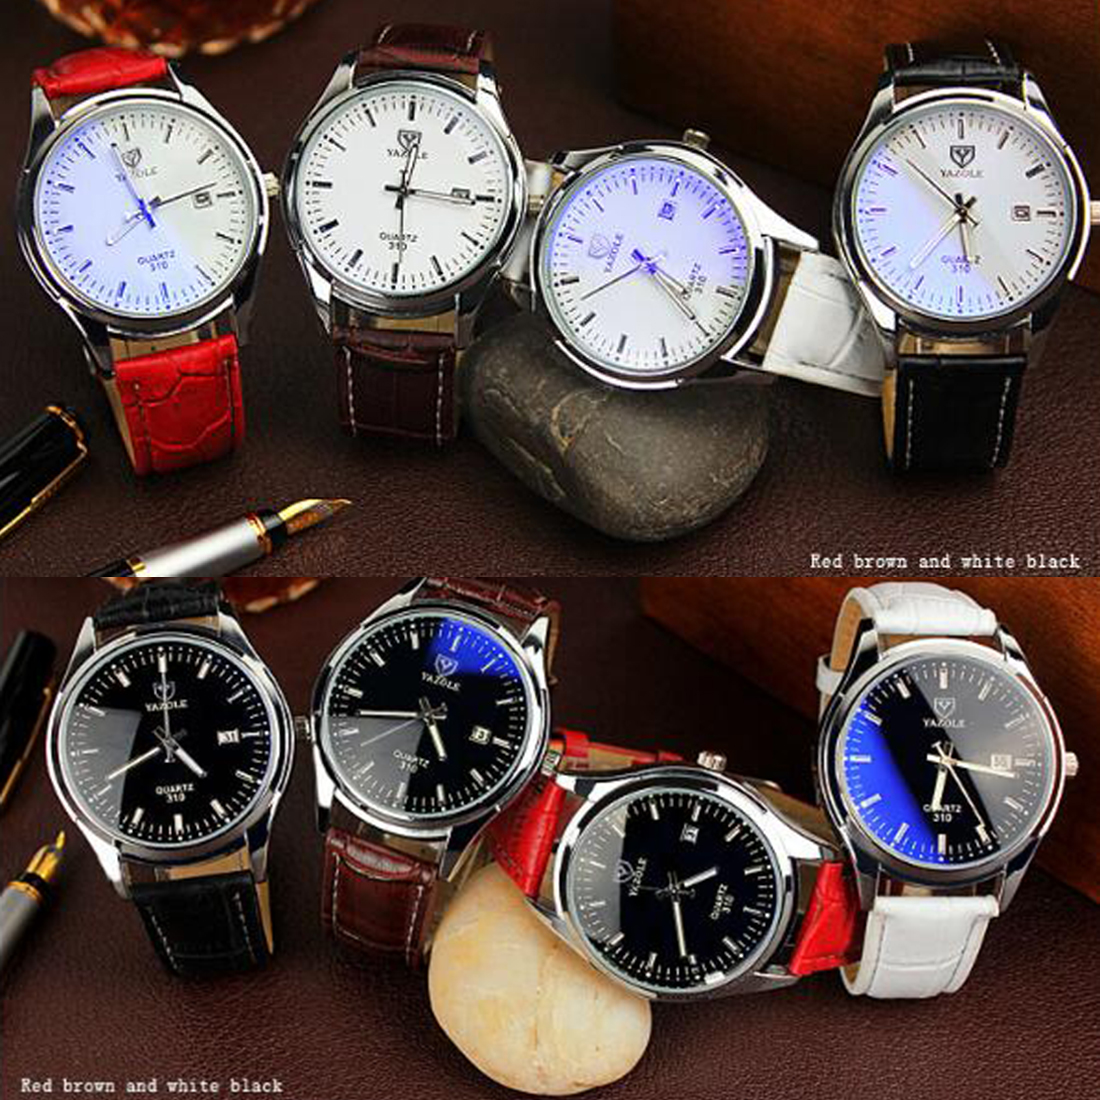 New 2017 Quartz Watch Men Watches Top Brand Luxury Famous Male Clock Wrist Watch Calendar Quartz-watch Relogio Masculino bailishi watch men watches top brand luxury famous wristwatch male clock golden quartz wrist watch calendar relogio masculino